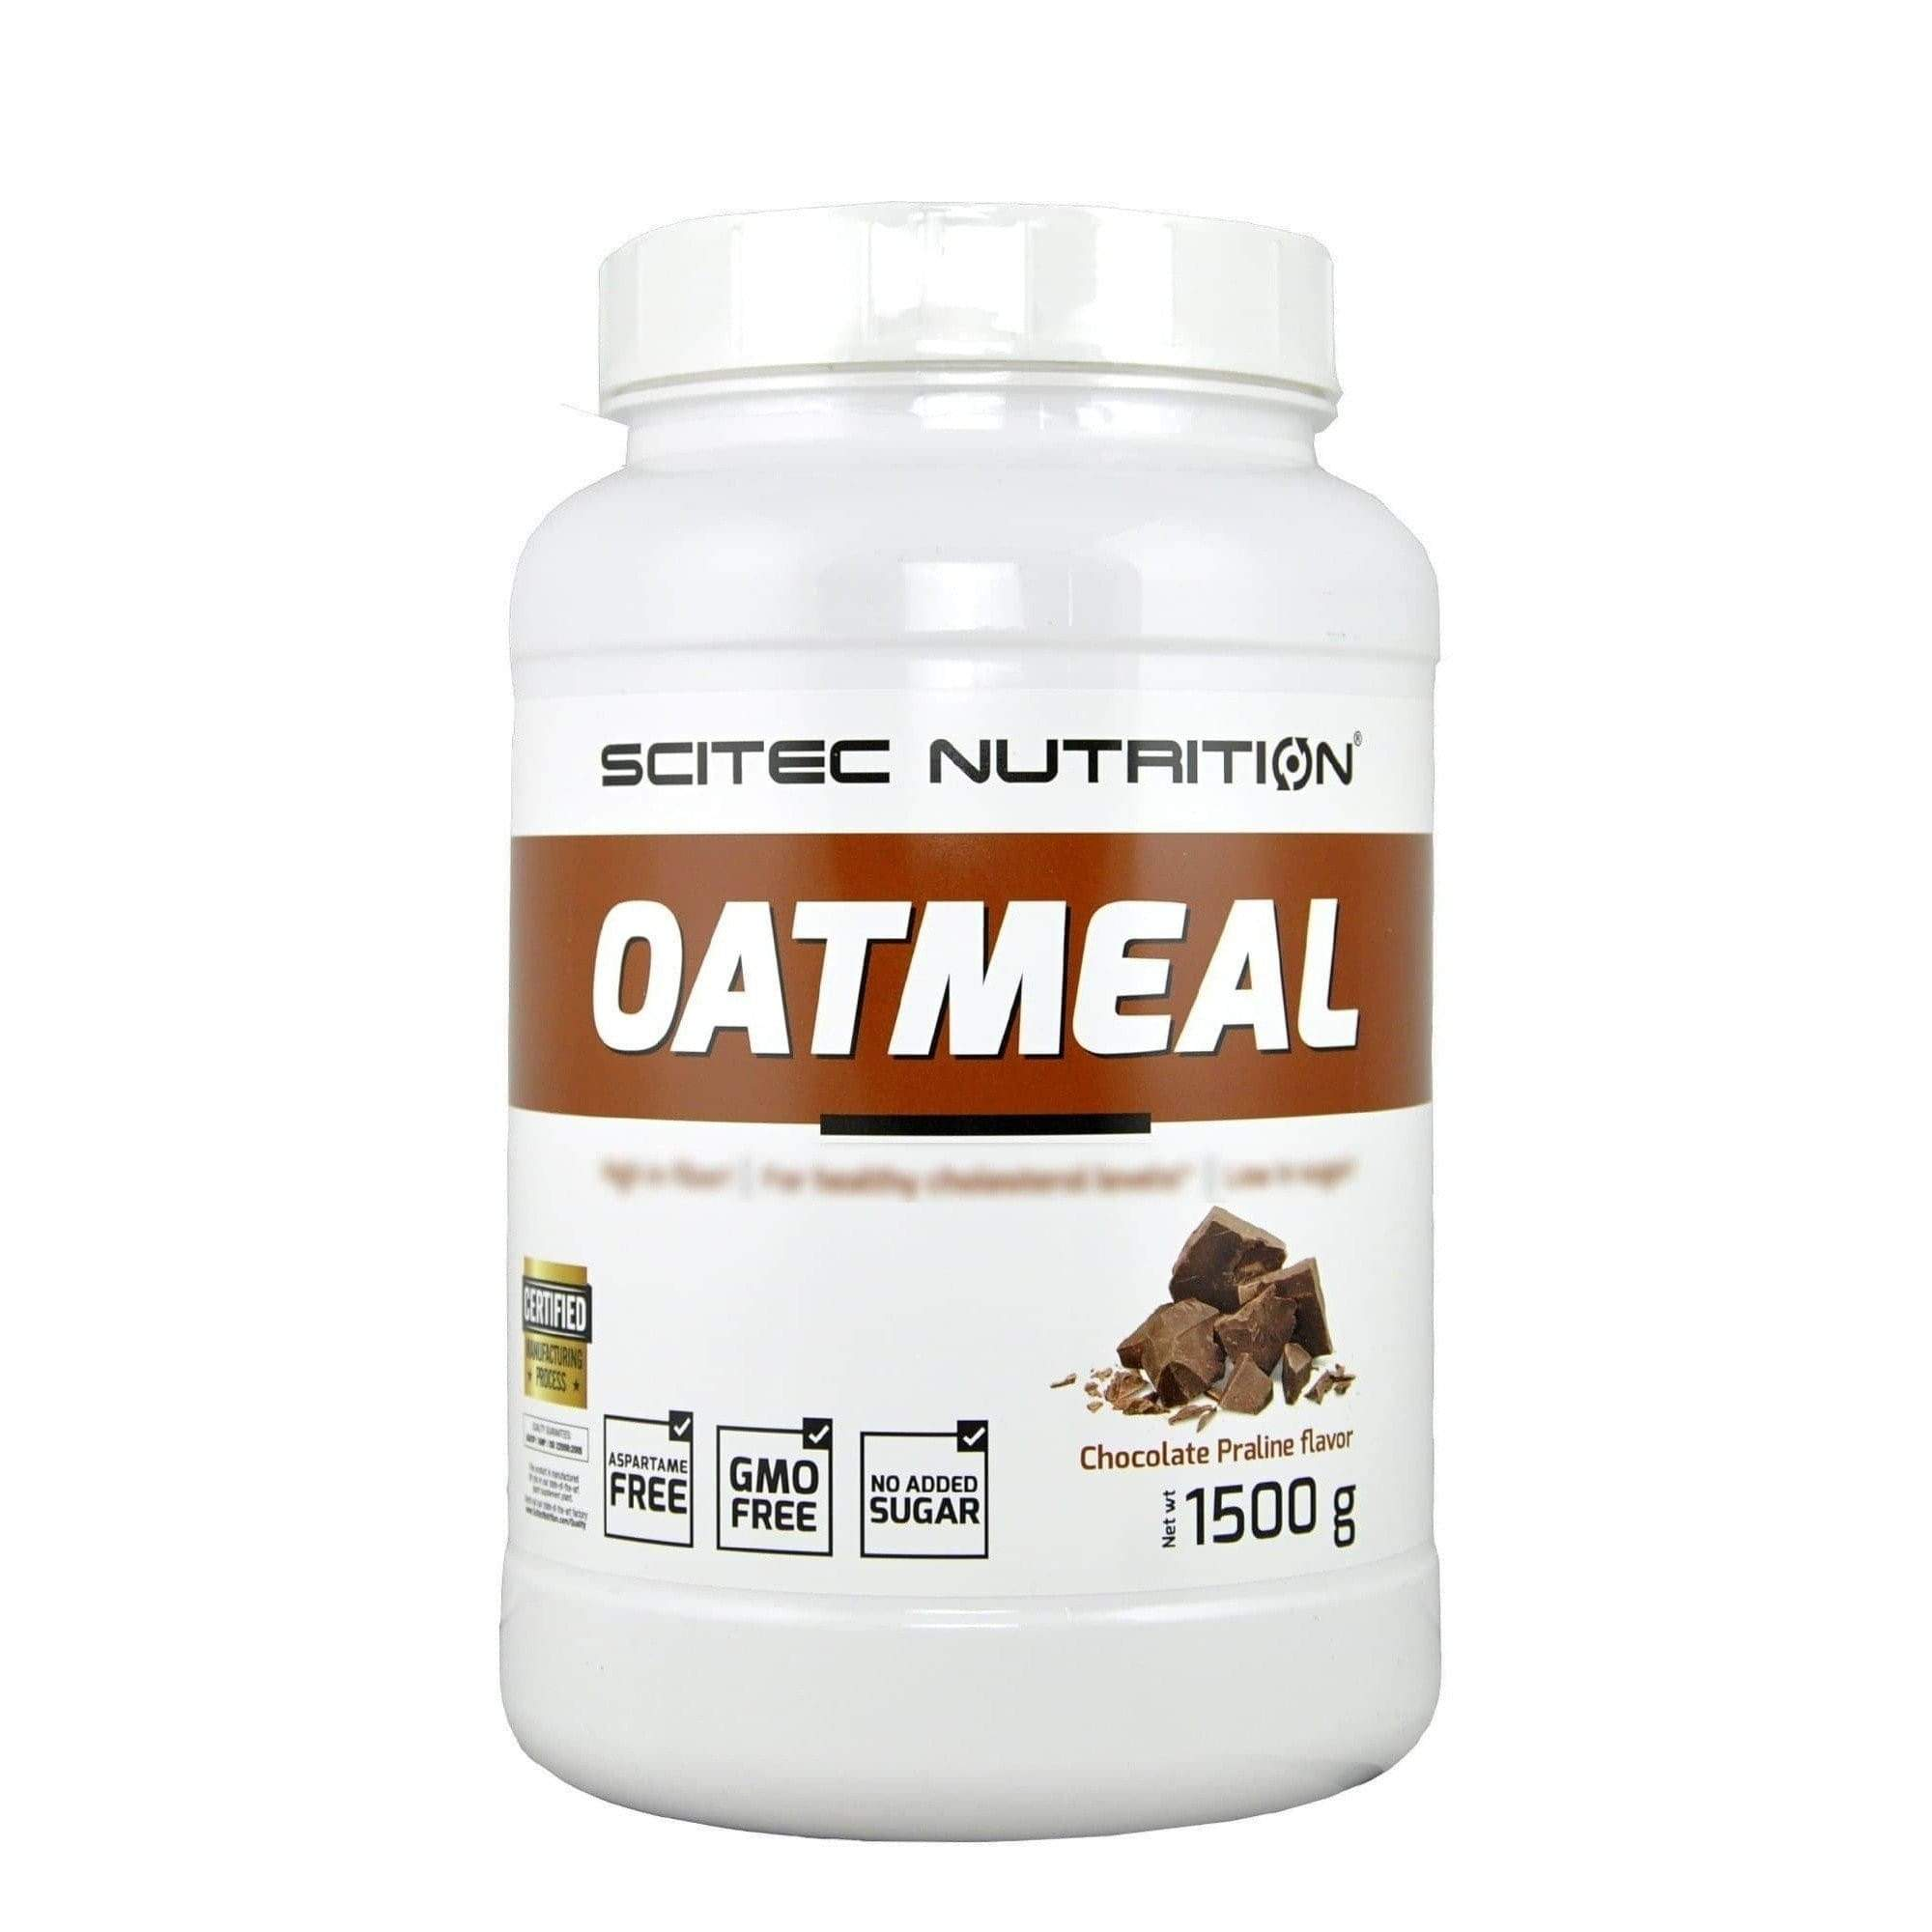 Scitec Nutrition Oatmeal